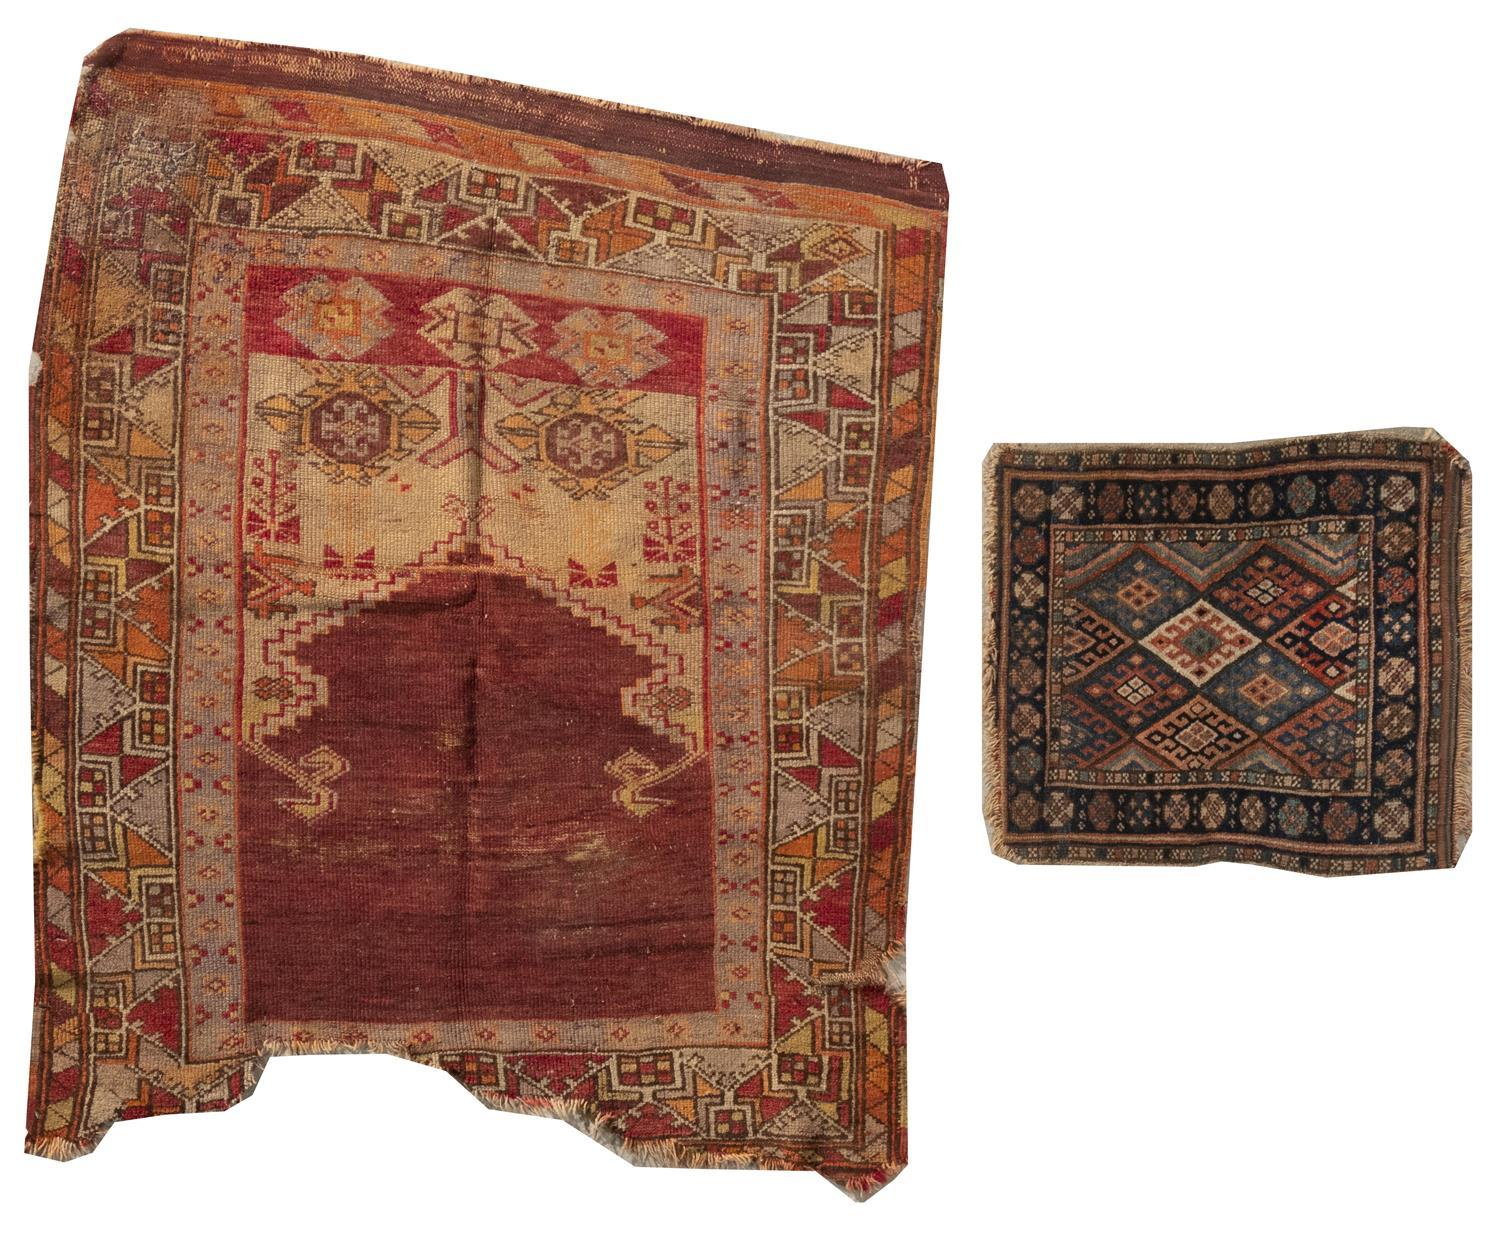 "TWO ORIENTAL RUGS: KURD JAFFE AND TURKISH PRAYER 1'9"" x 2'6"" and 3'8"" x 4'2"" Jaffe with traditional contiguous colorful diamonds su"